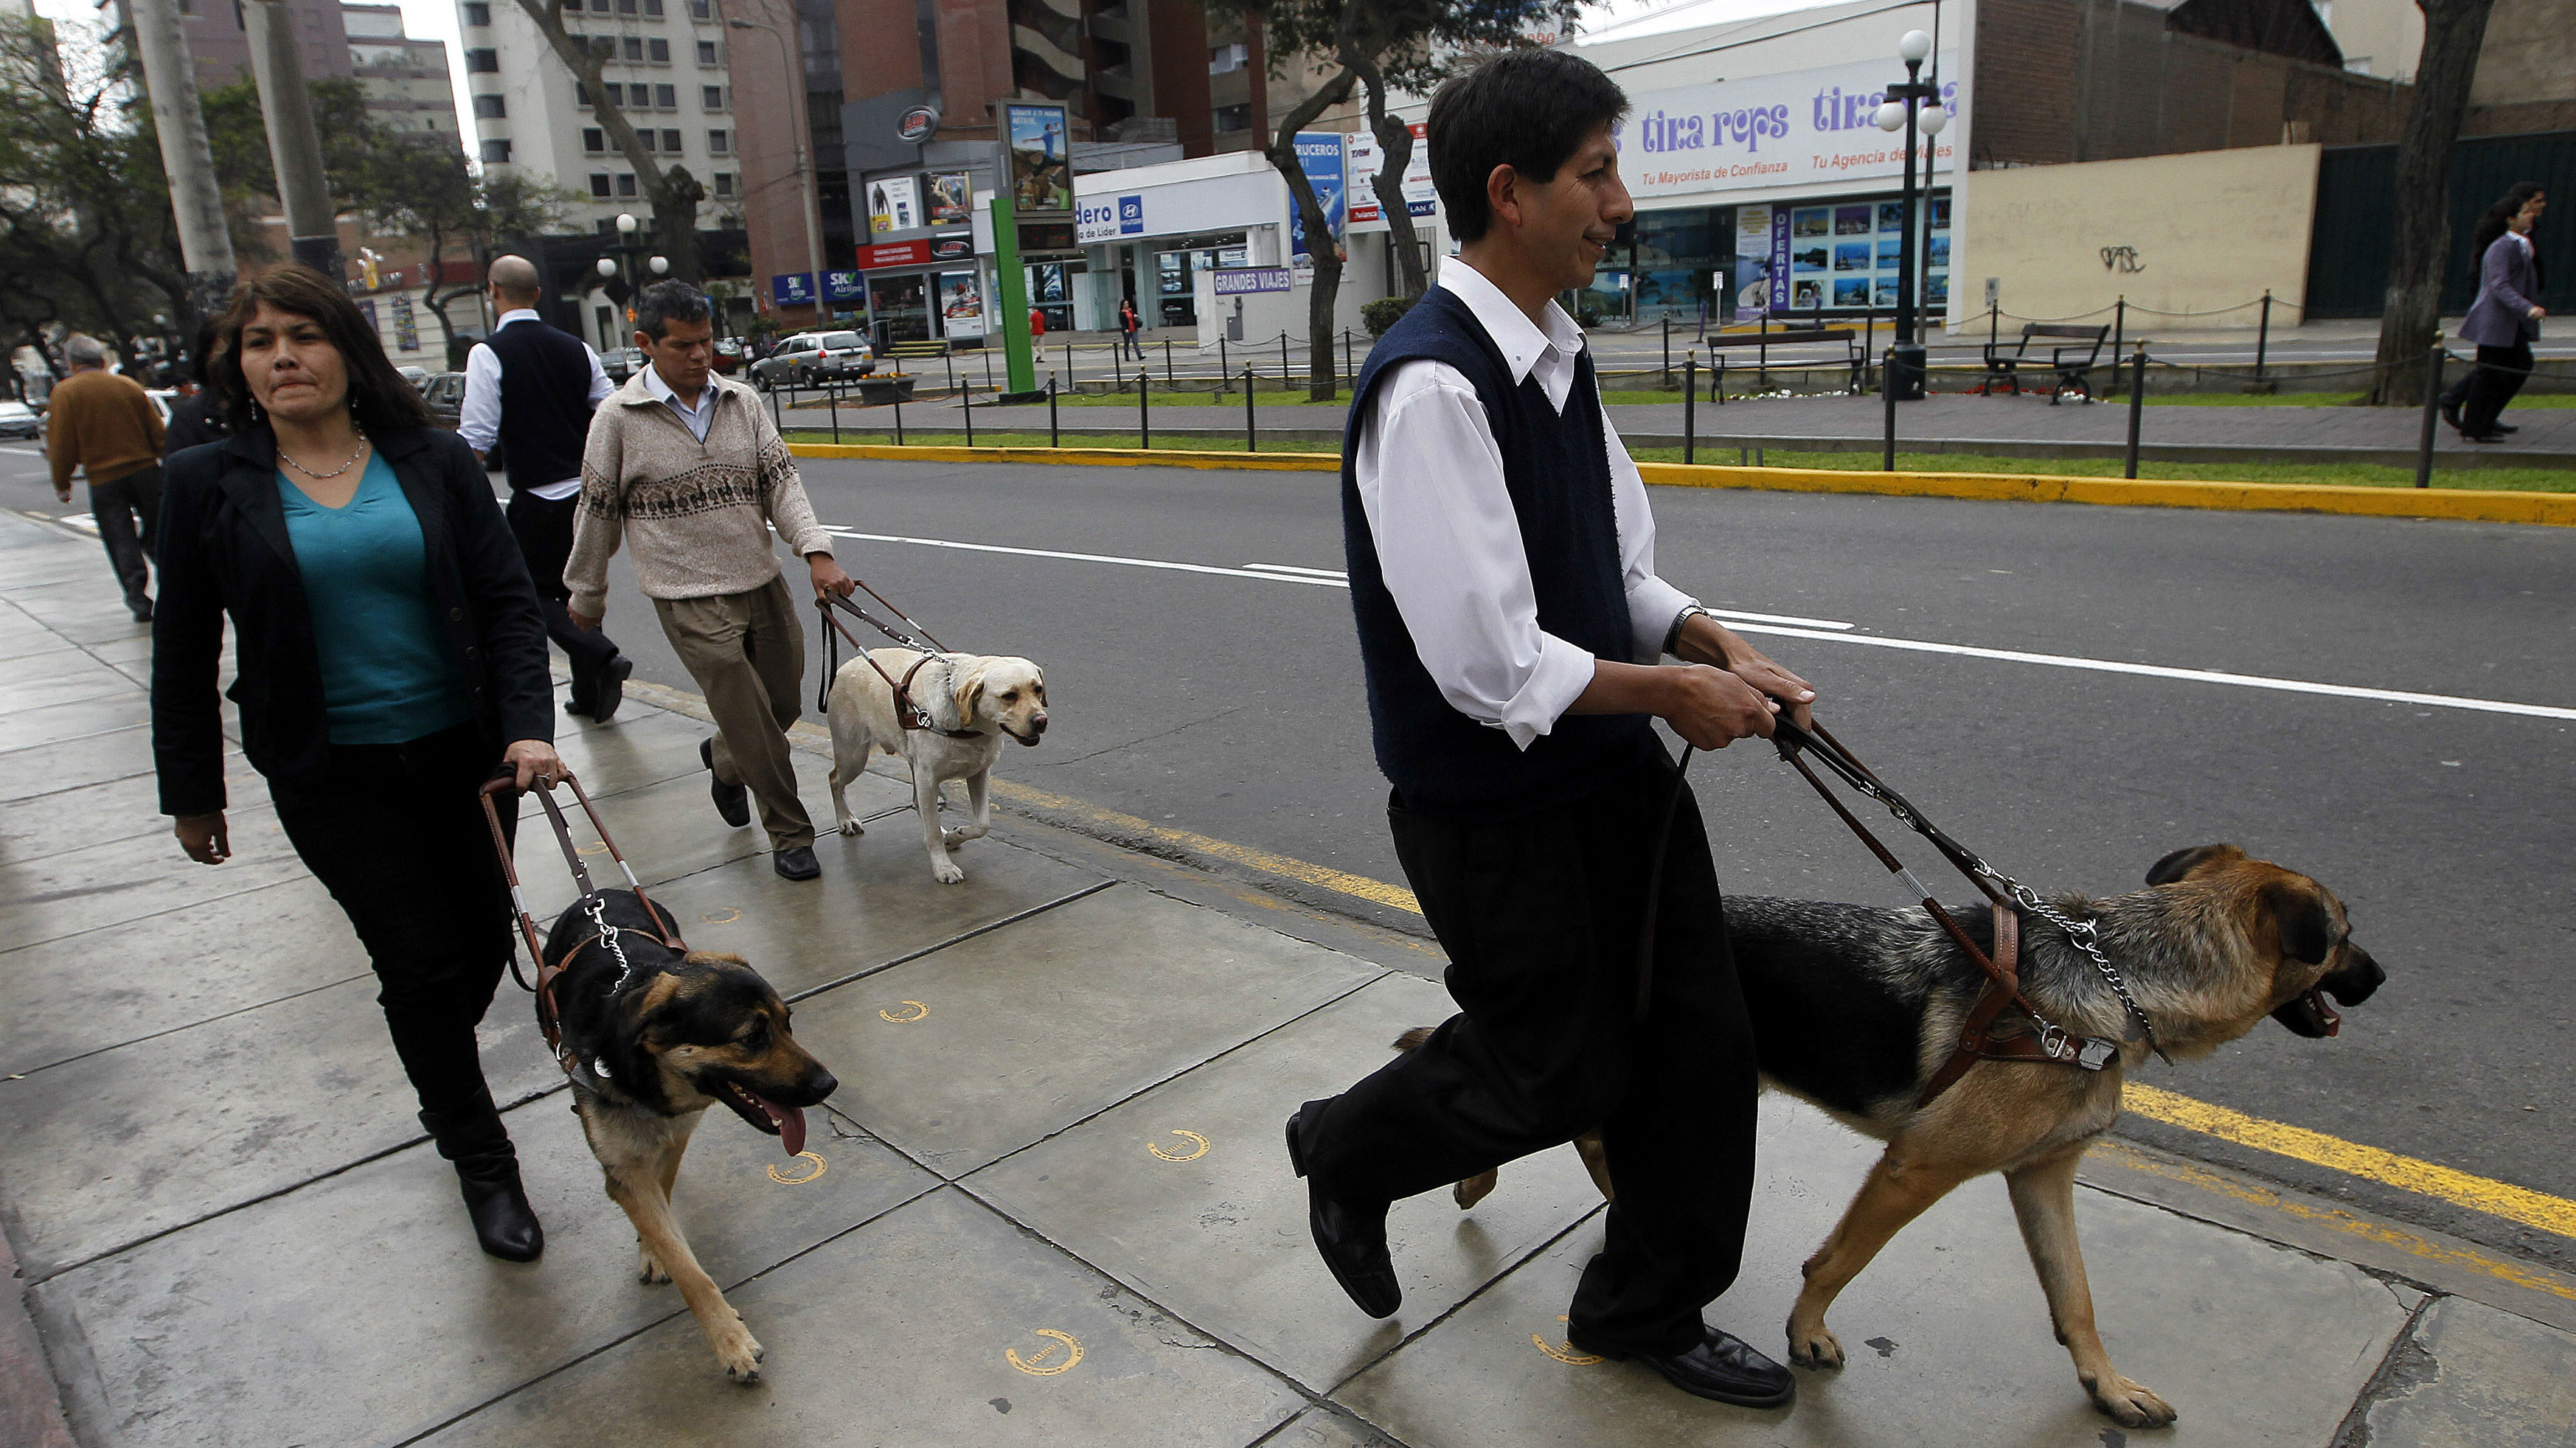 Guide dogs leading their owners on a street.